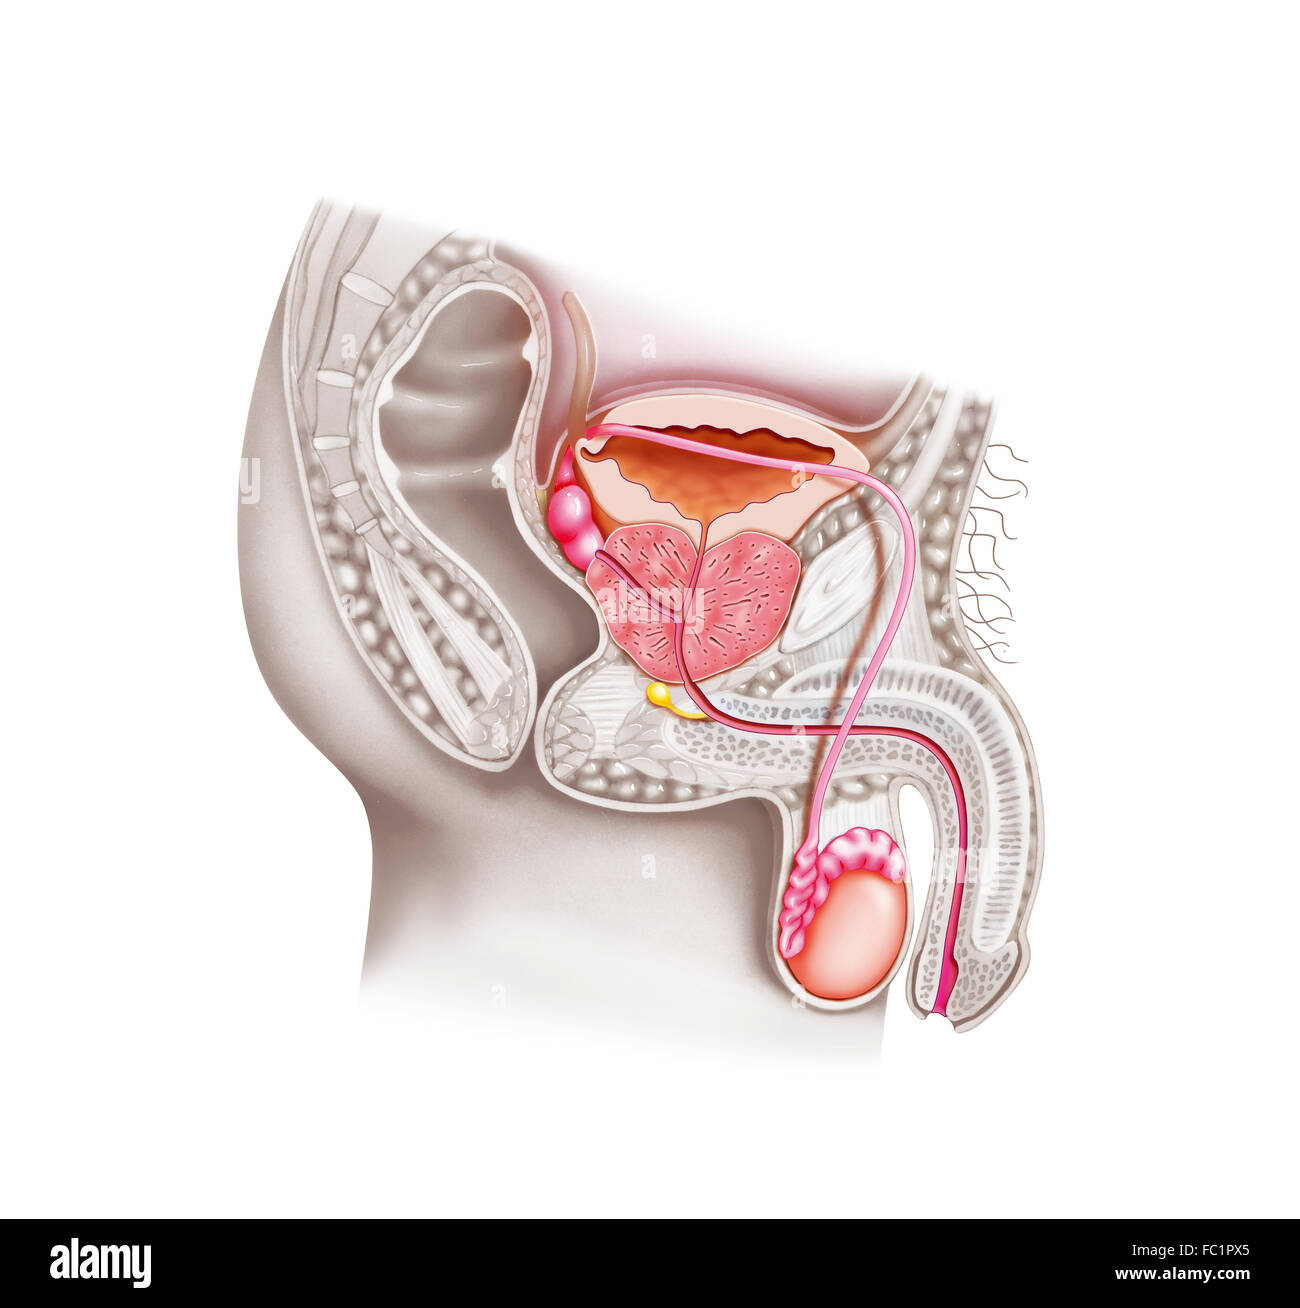 Anatomy Male Genitalia Stock Photos & Anatomy Male Genitalia Stock ...